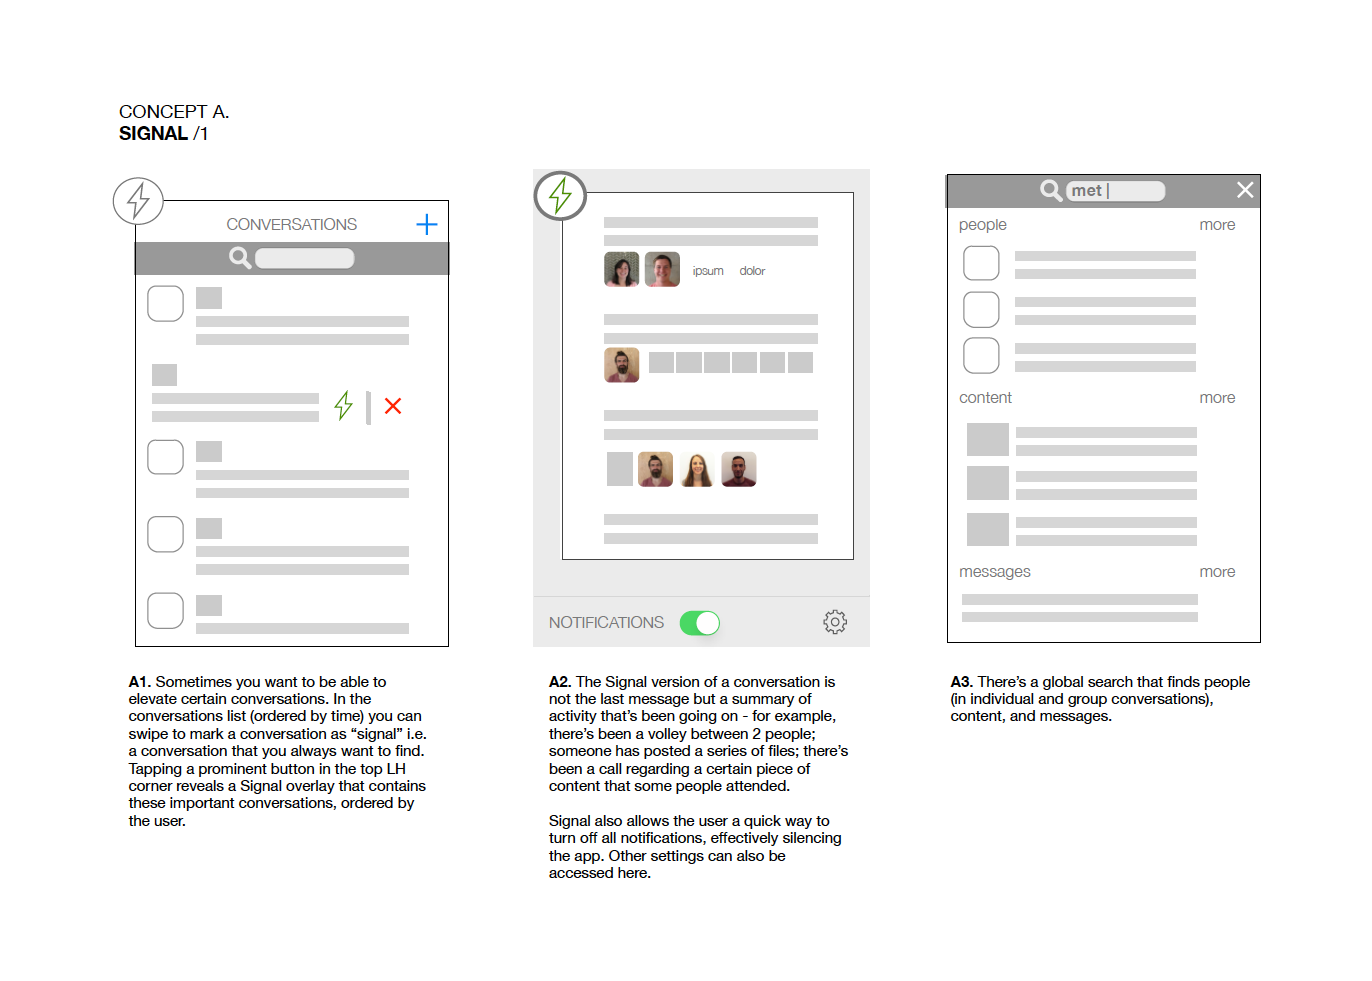 Explore - One of my tasks at Cisco SF was to investigate alternative structures for the iOS app. I created wireframe for three concepts: Signal, Instant, and Authenticity. I like snappy concept names.